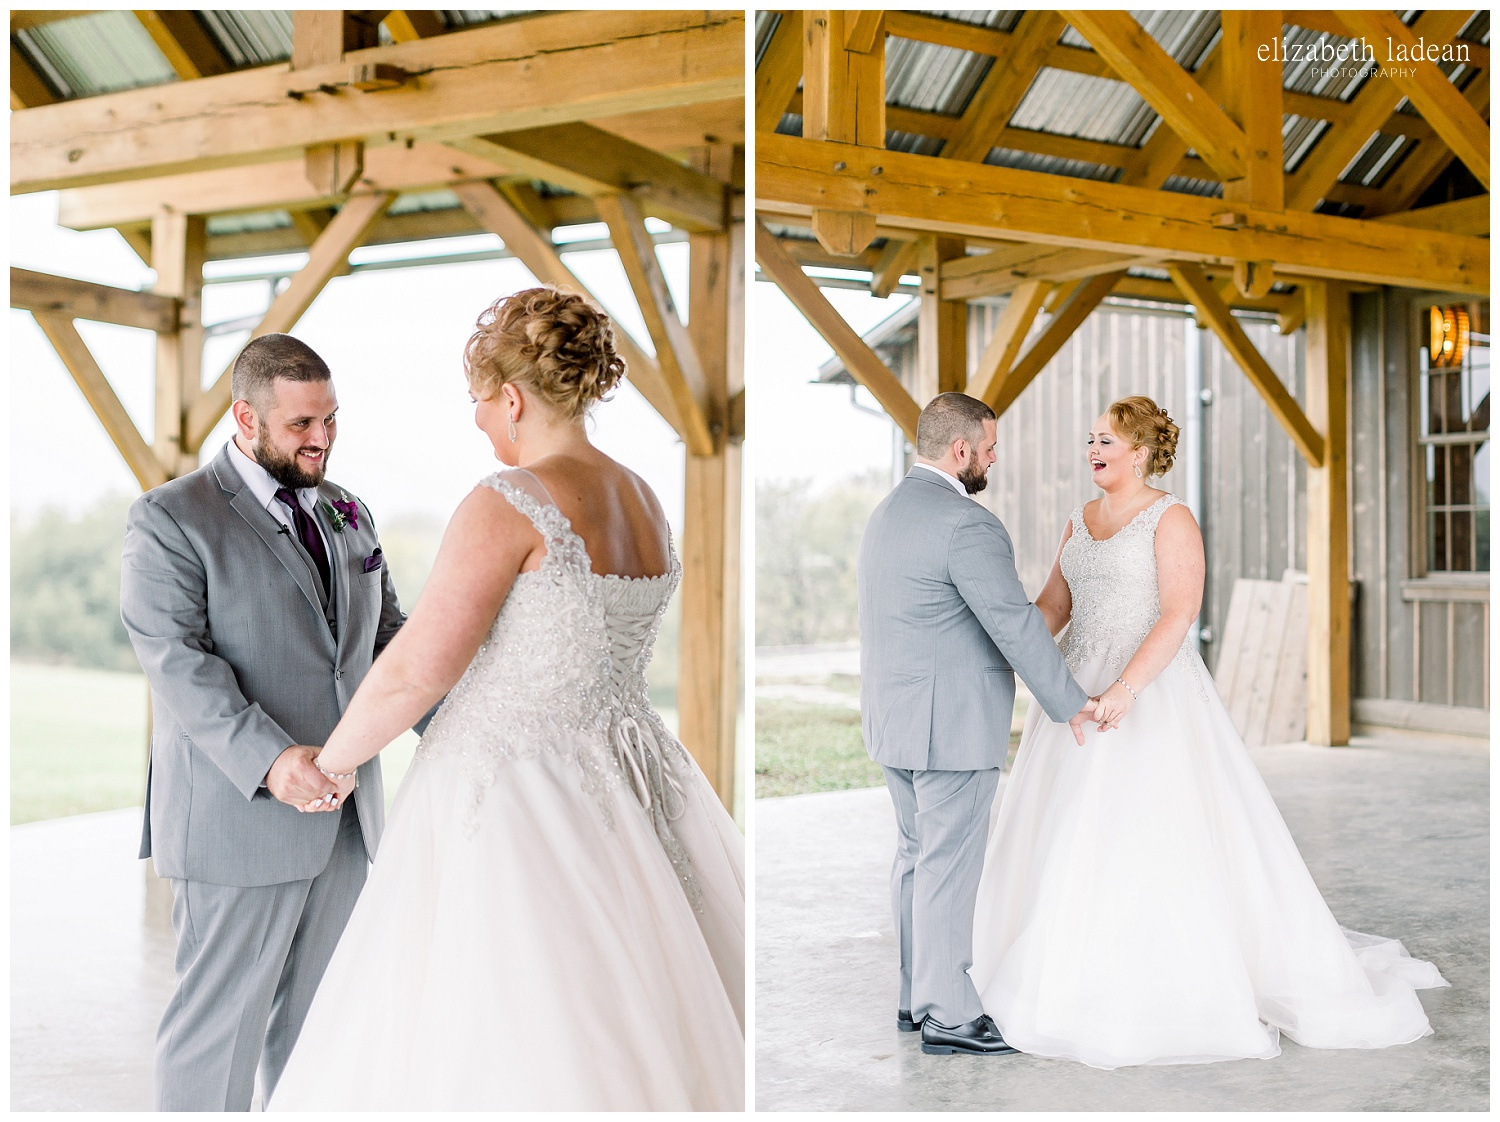 Weston-Timber-Barn-Wedding-Photography-L+A-elizabeth-ladean0photo_1860.jpg